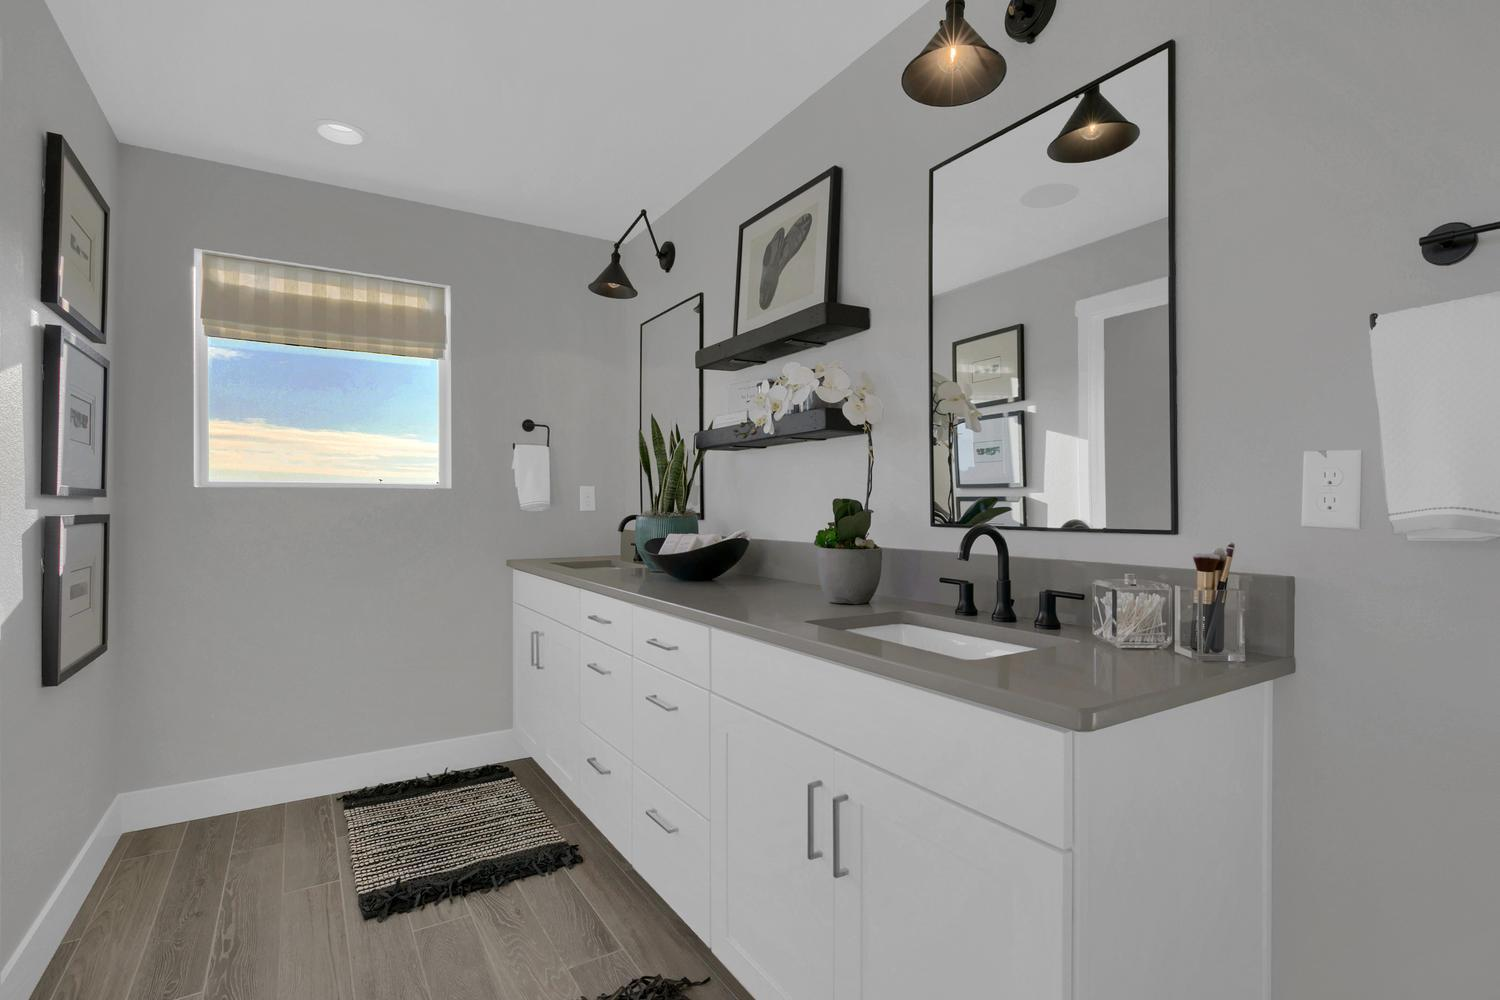 Bathroom featured in the Culebra By Keller Homes, A Toll Bros. Co. in Colorado Springs, CO